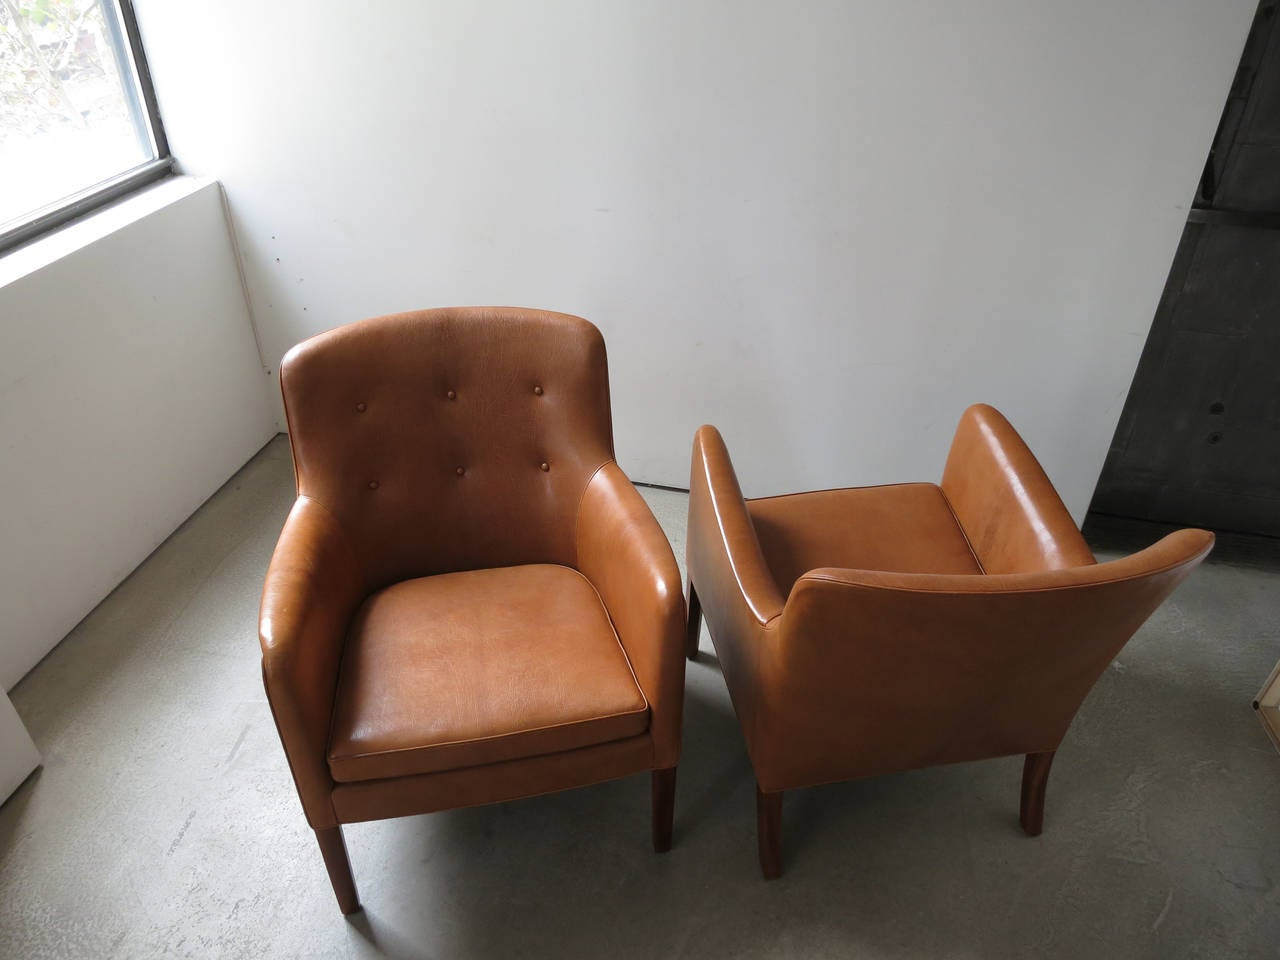 Goatskin Pair of 1940s Lounge Chairs in Nigerian Leather by Ole Wanscher